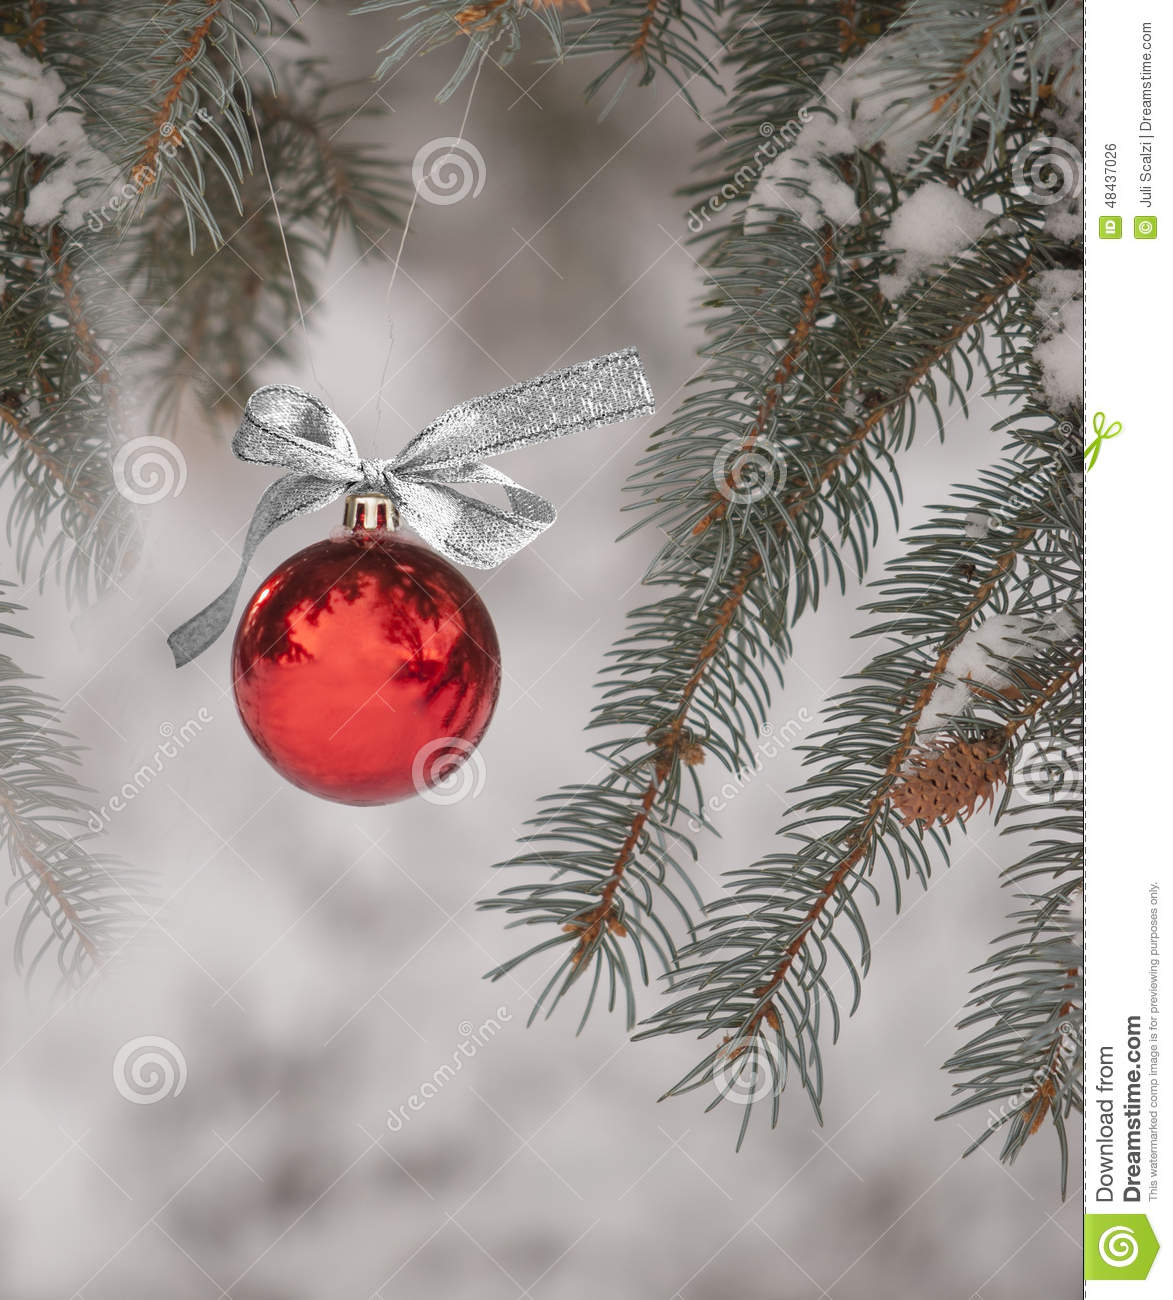 Christmas Ornament Hanging From Tree Outdoors Stock Photo